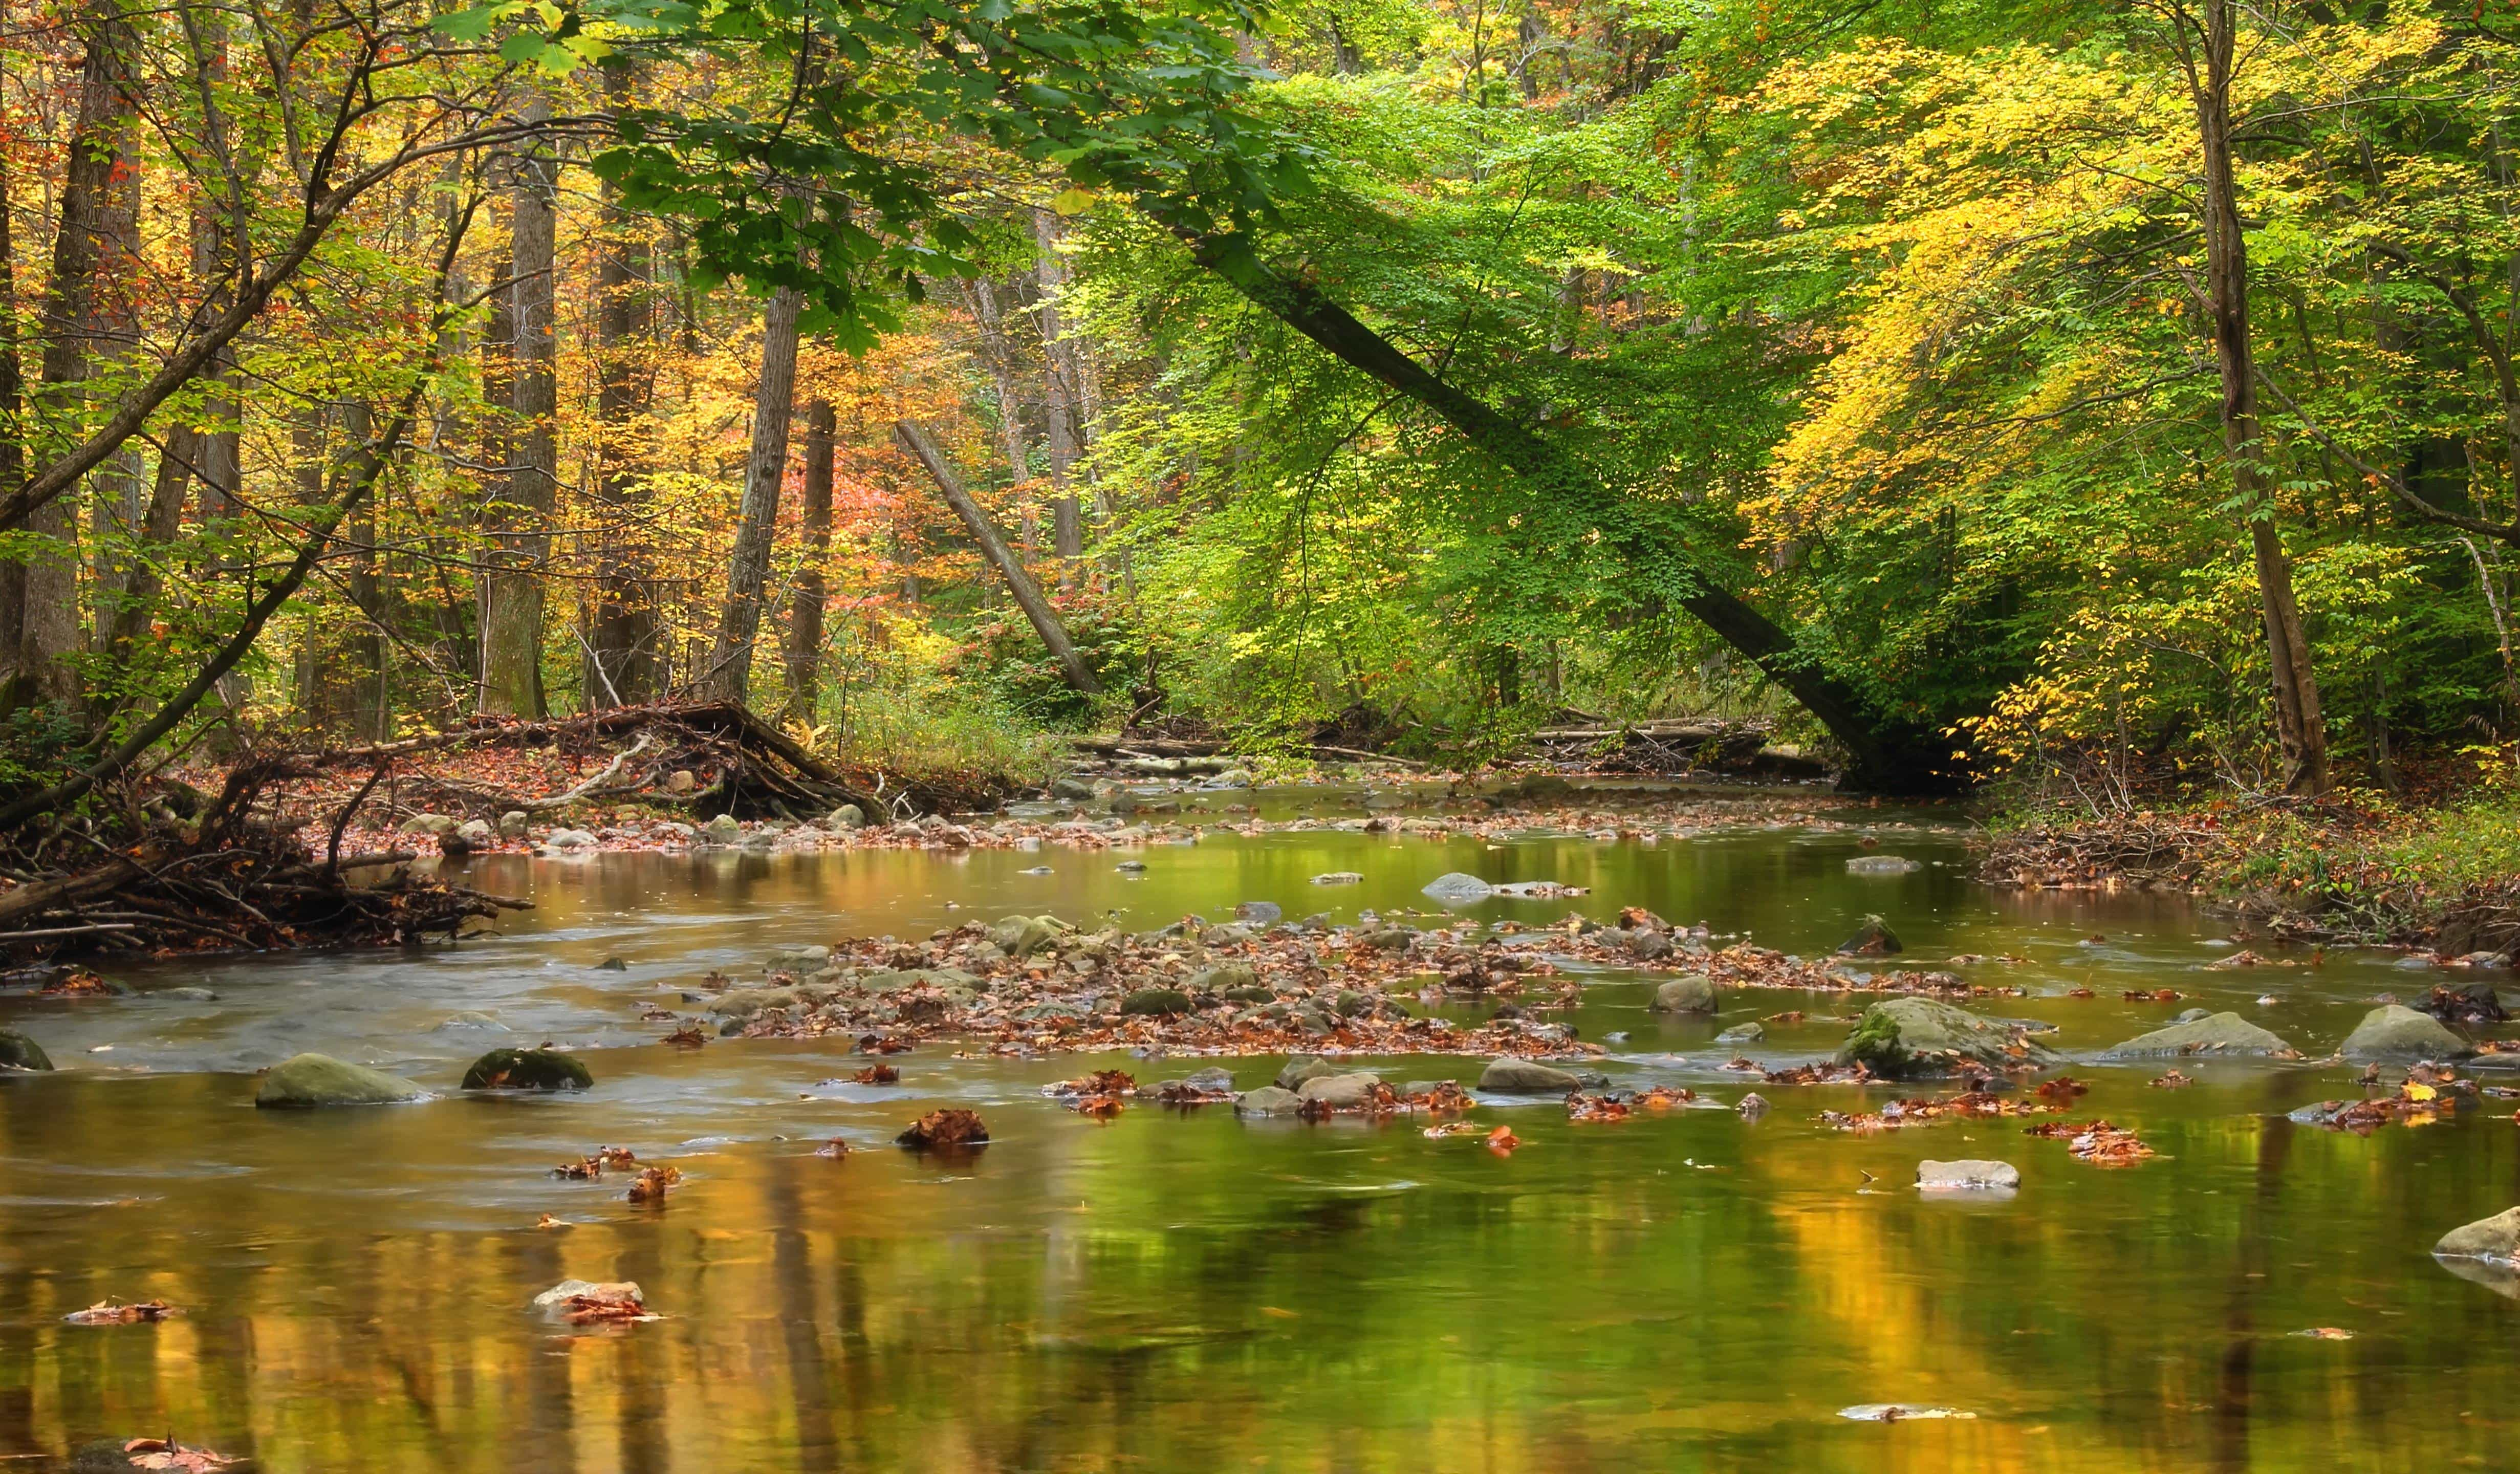 Free picture: tree, leaf, landscape, river, wood, nature, water, forest